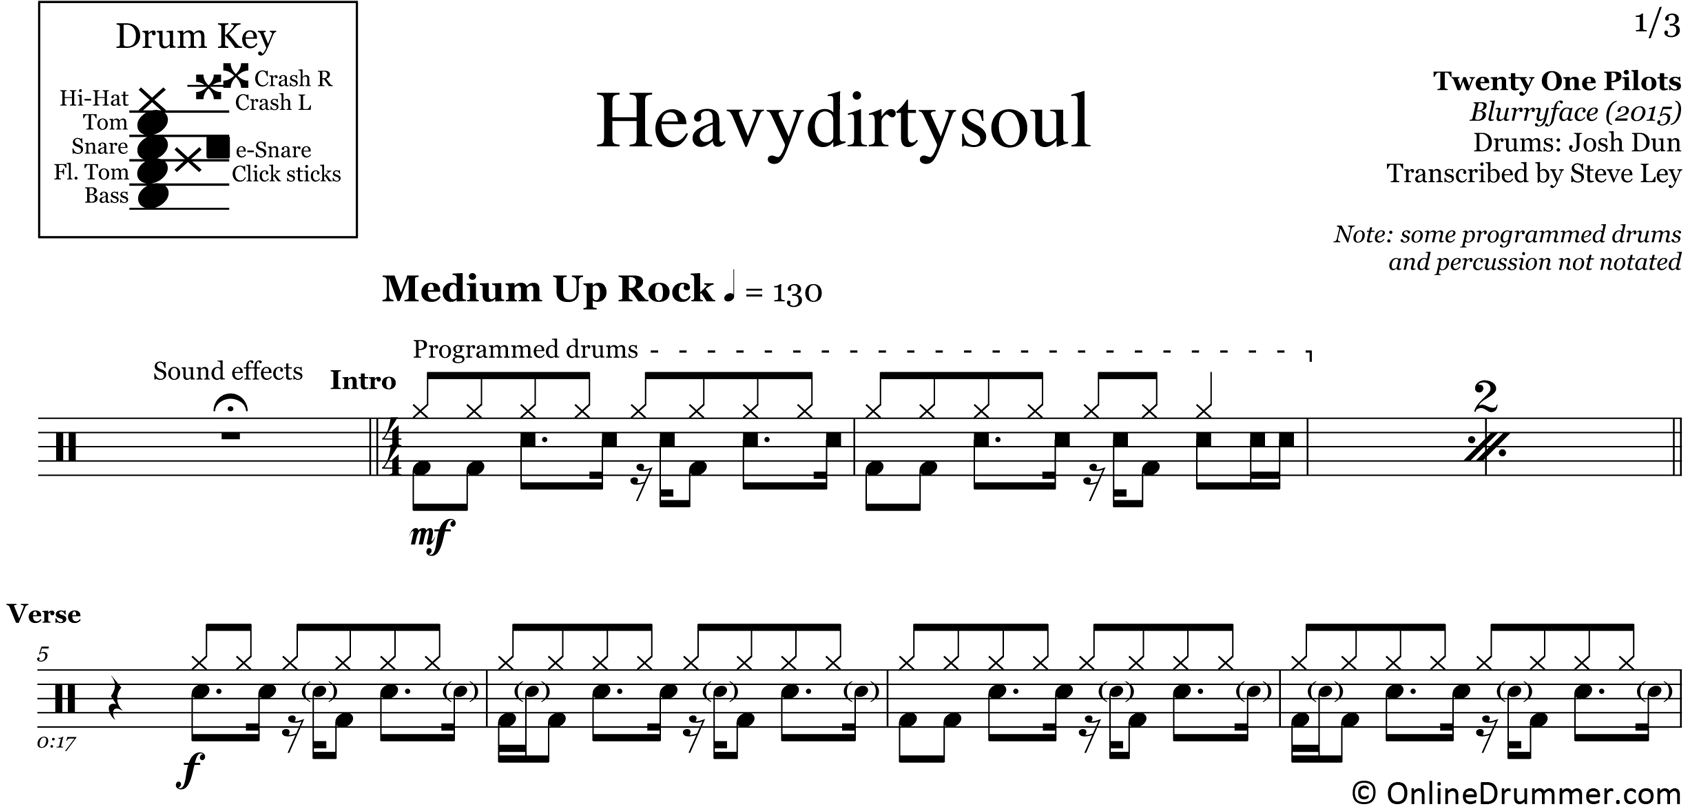 Heavydirtysoul - Twenty One Pilots - Drum Sheet Music